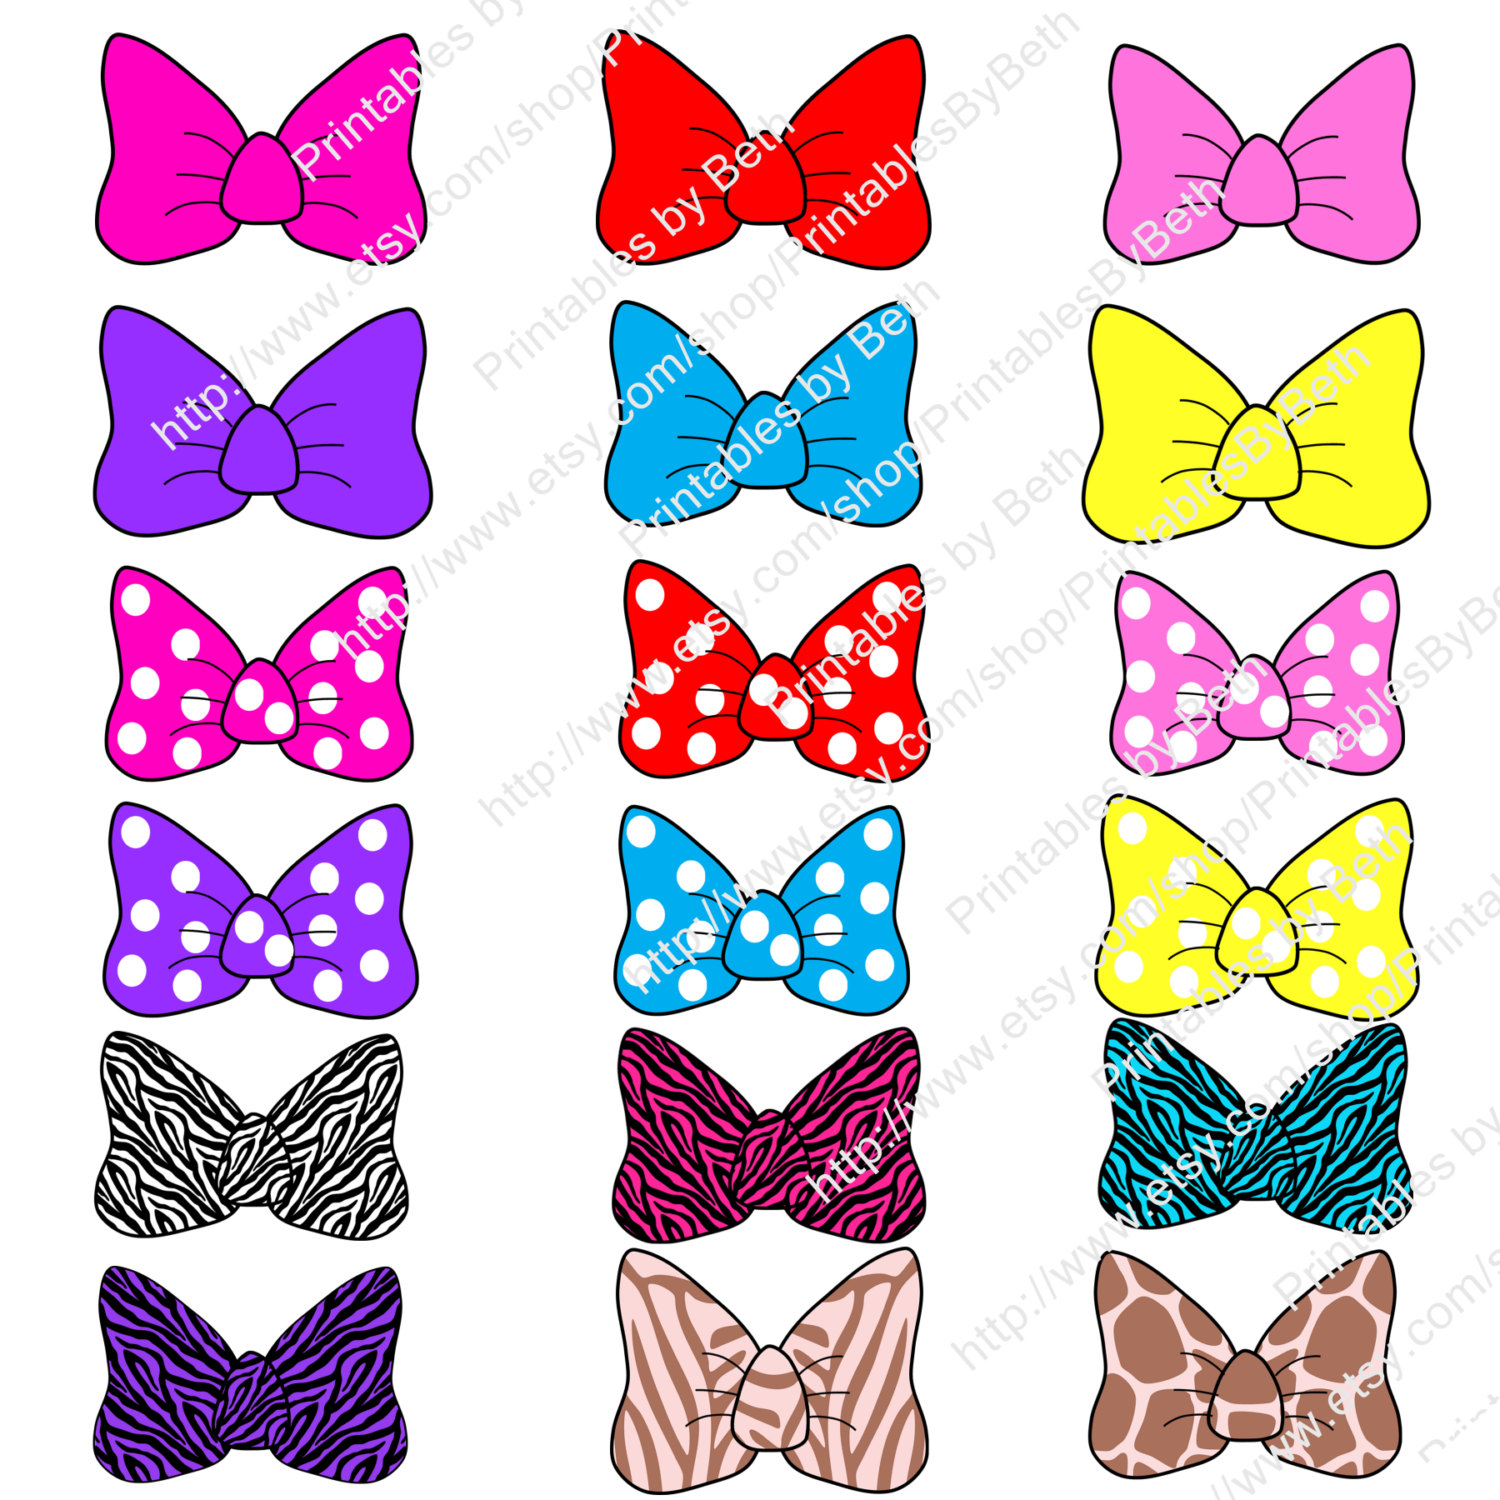 photograph regarding Printable Minnie Mouse Bows referred to as Minnie Mouse Bow Template Clipart No cost down load least complicated